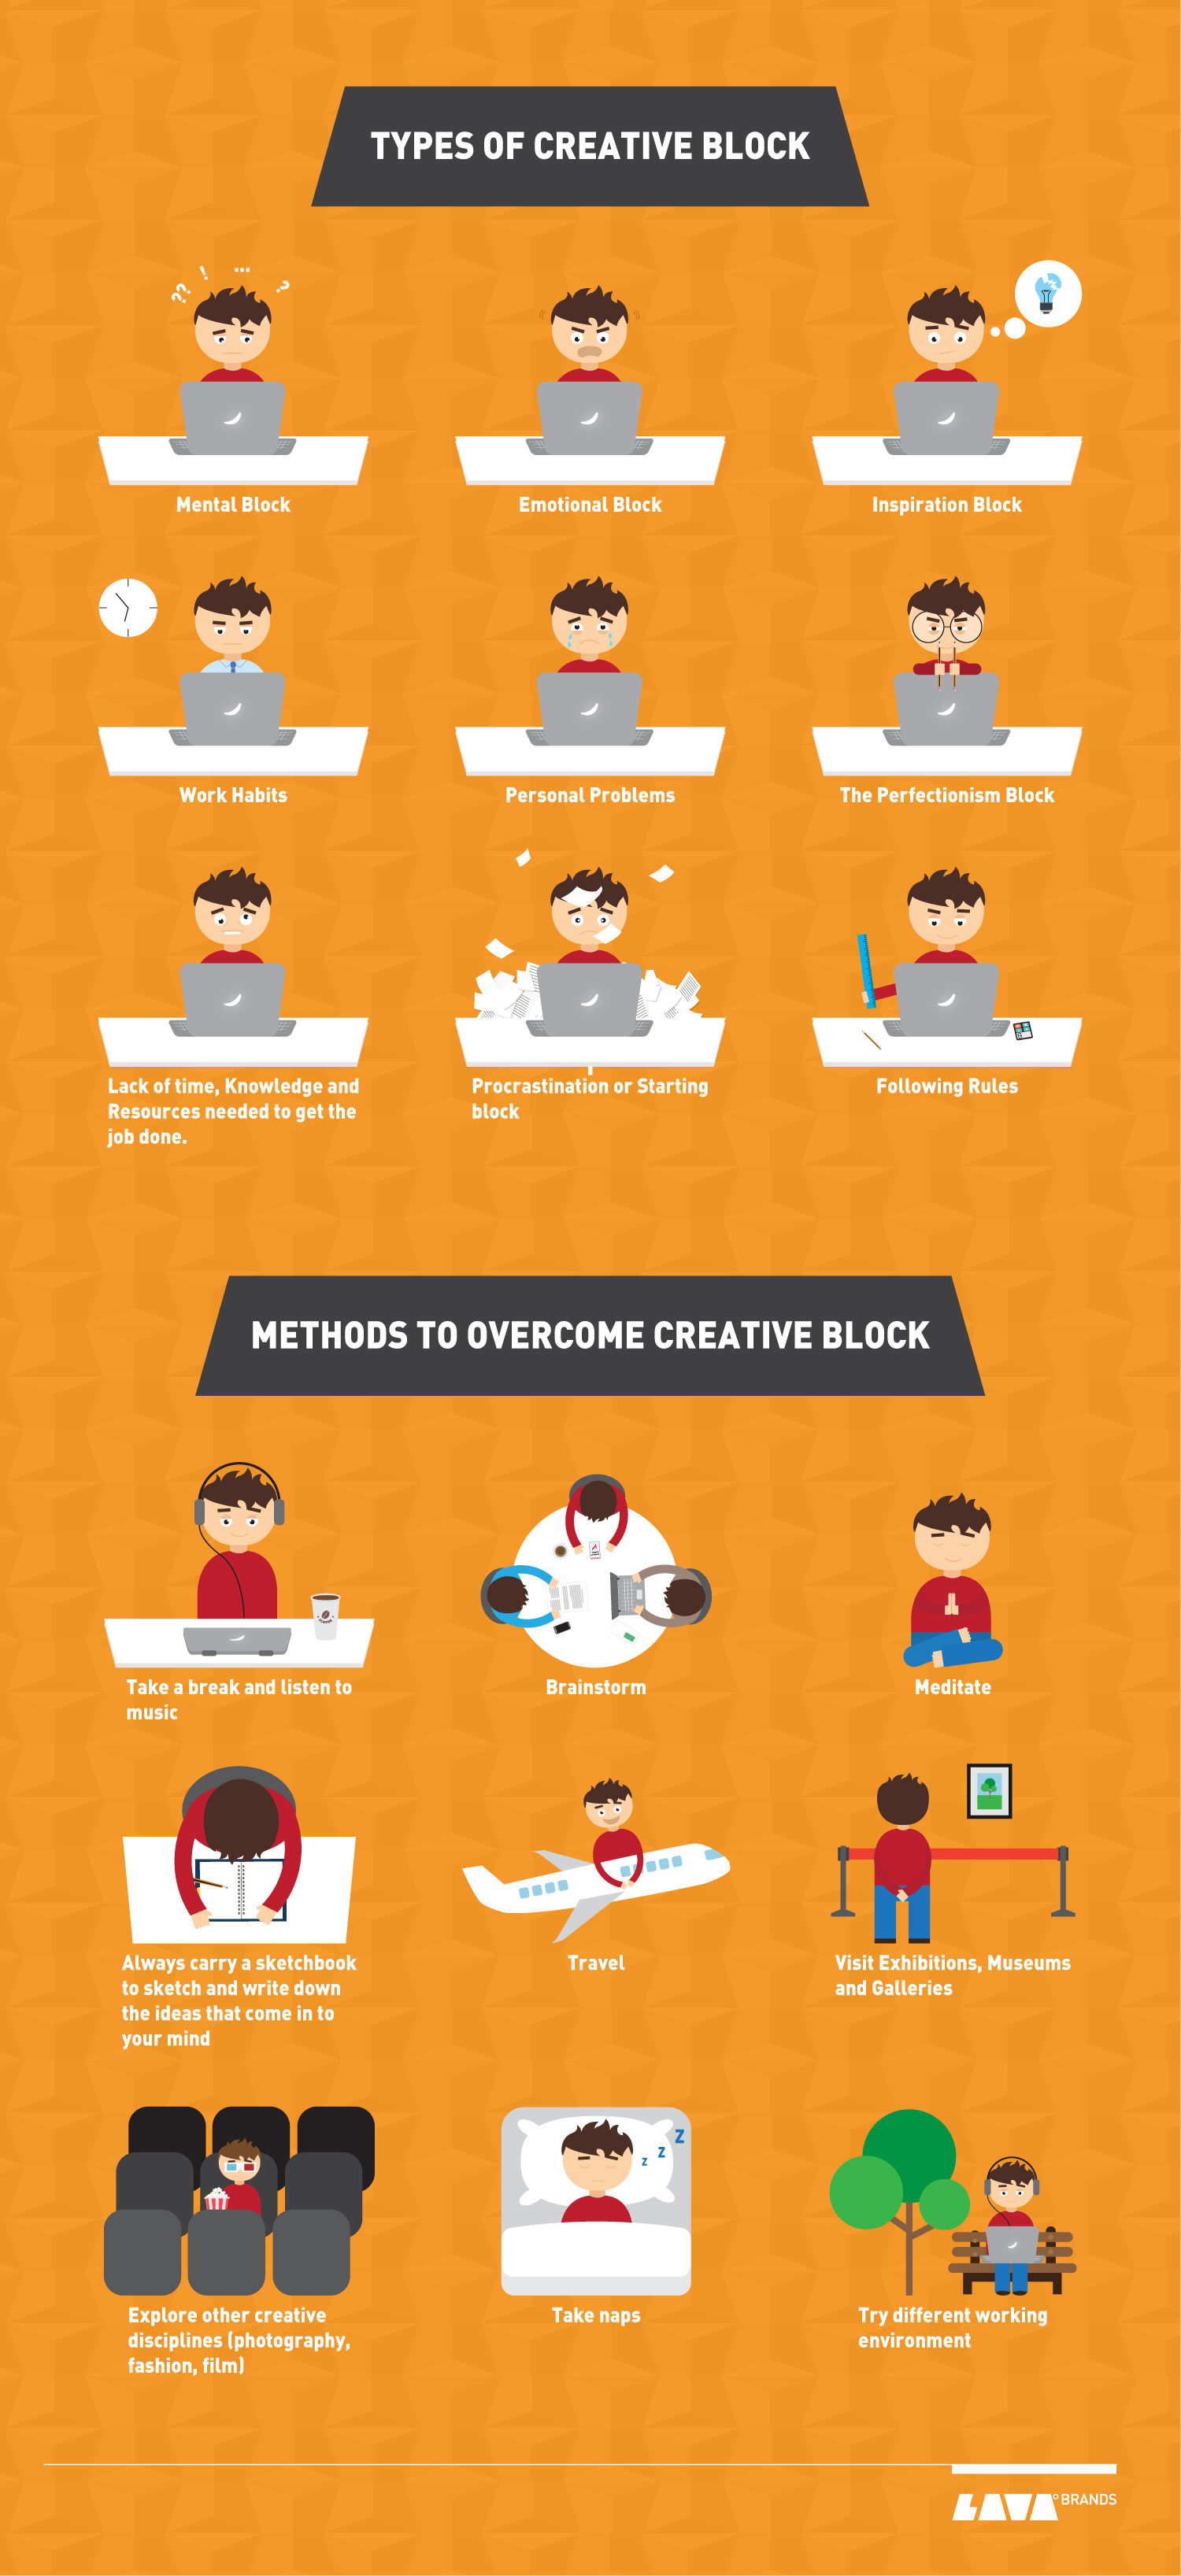 types of creative block and how to overcome it INFO-GRAPHIC